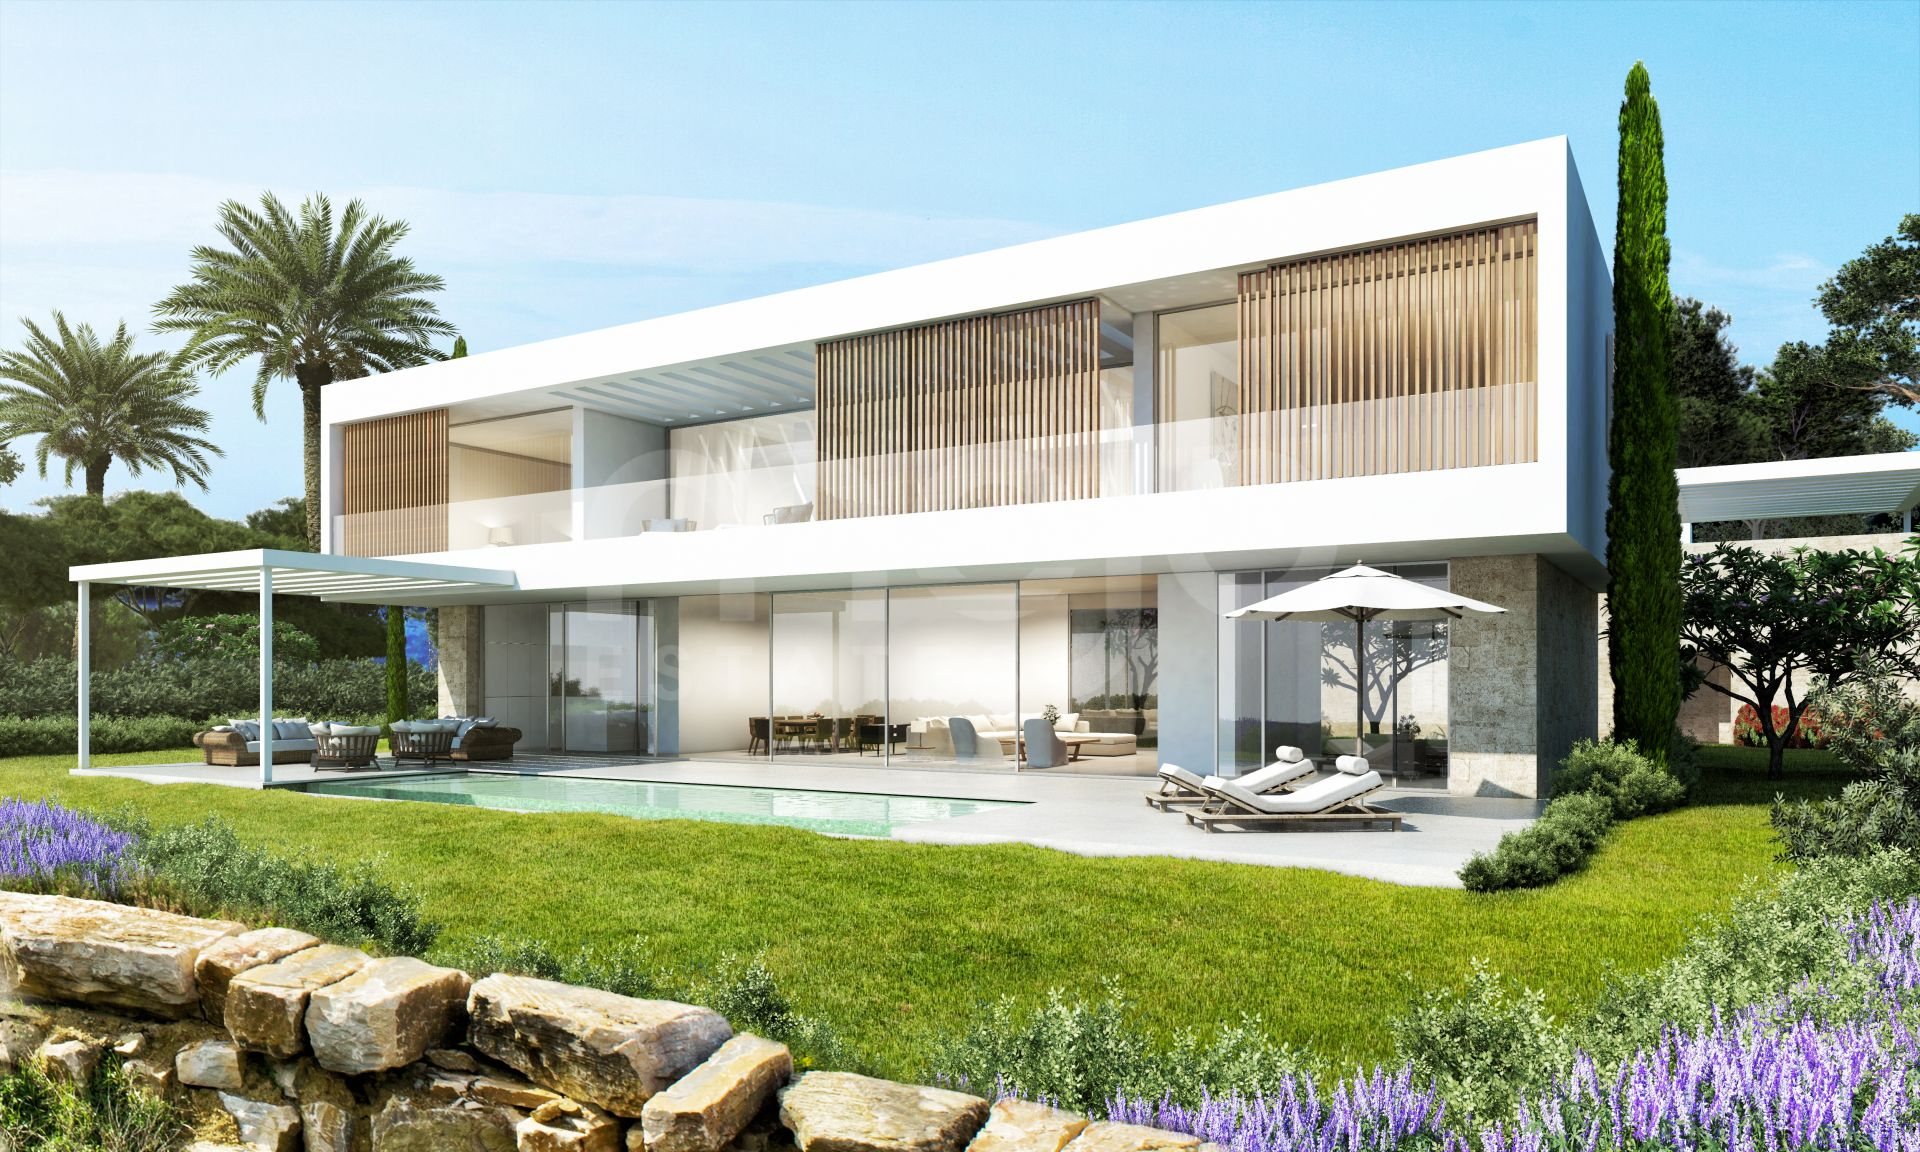 SPECTACULAR CONTEMPORARY LUXURY VILLA FRONTLINE GOLF IN EXCLUSIVE FINCA CORTESIN RESORT, CASARES